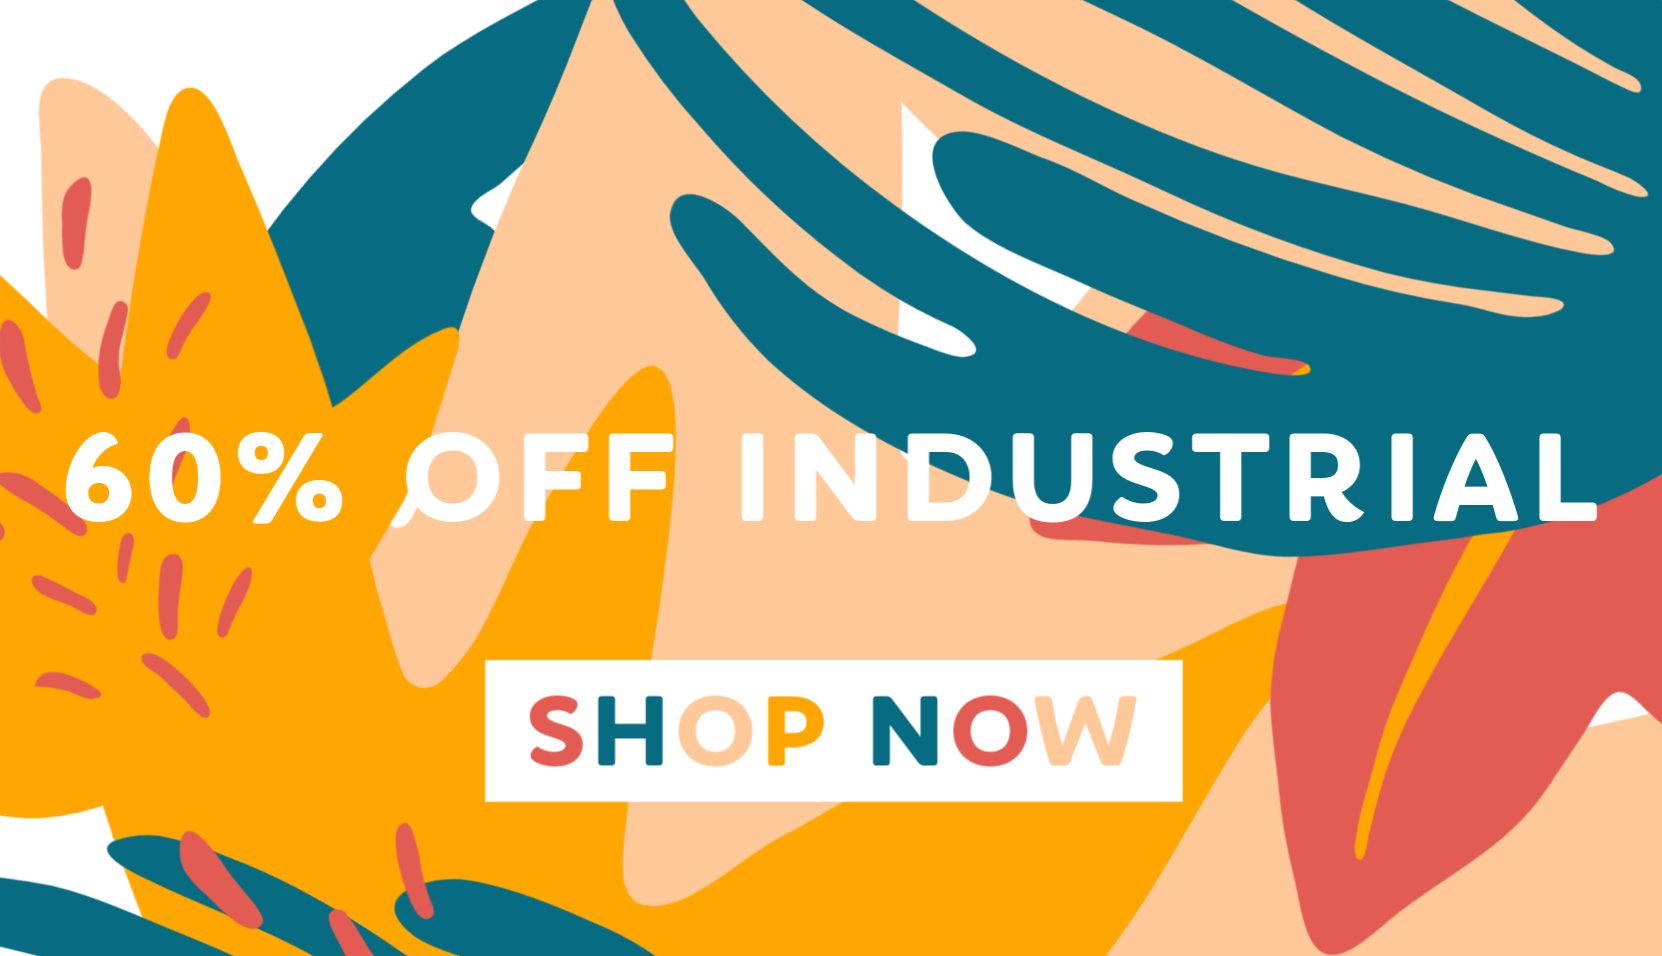 60% off industrial